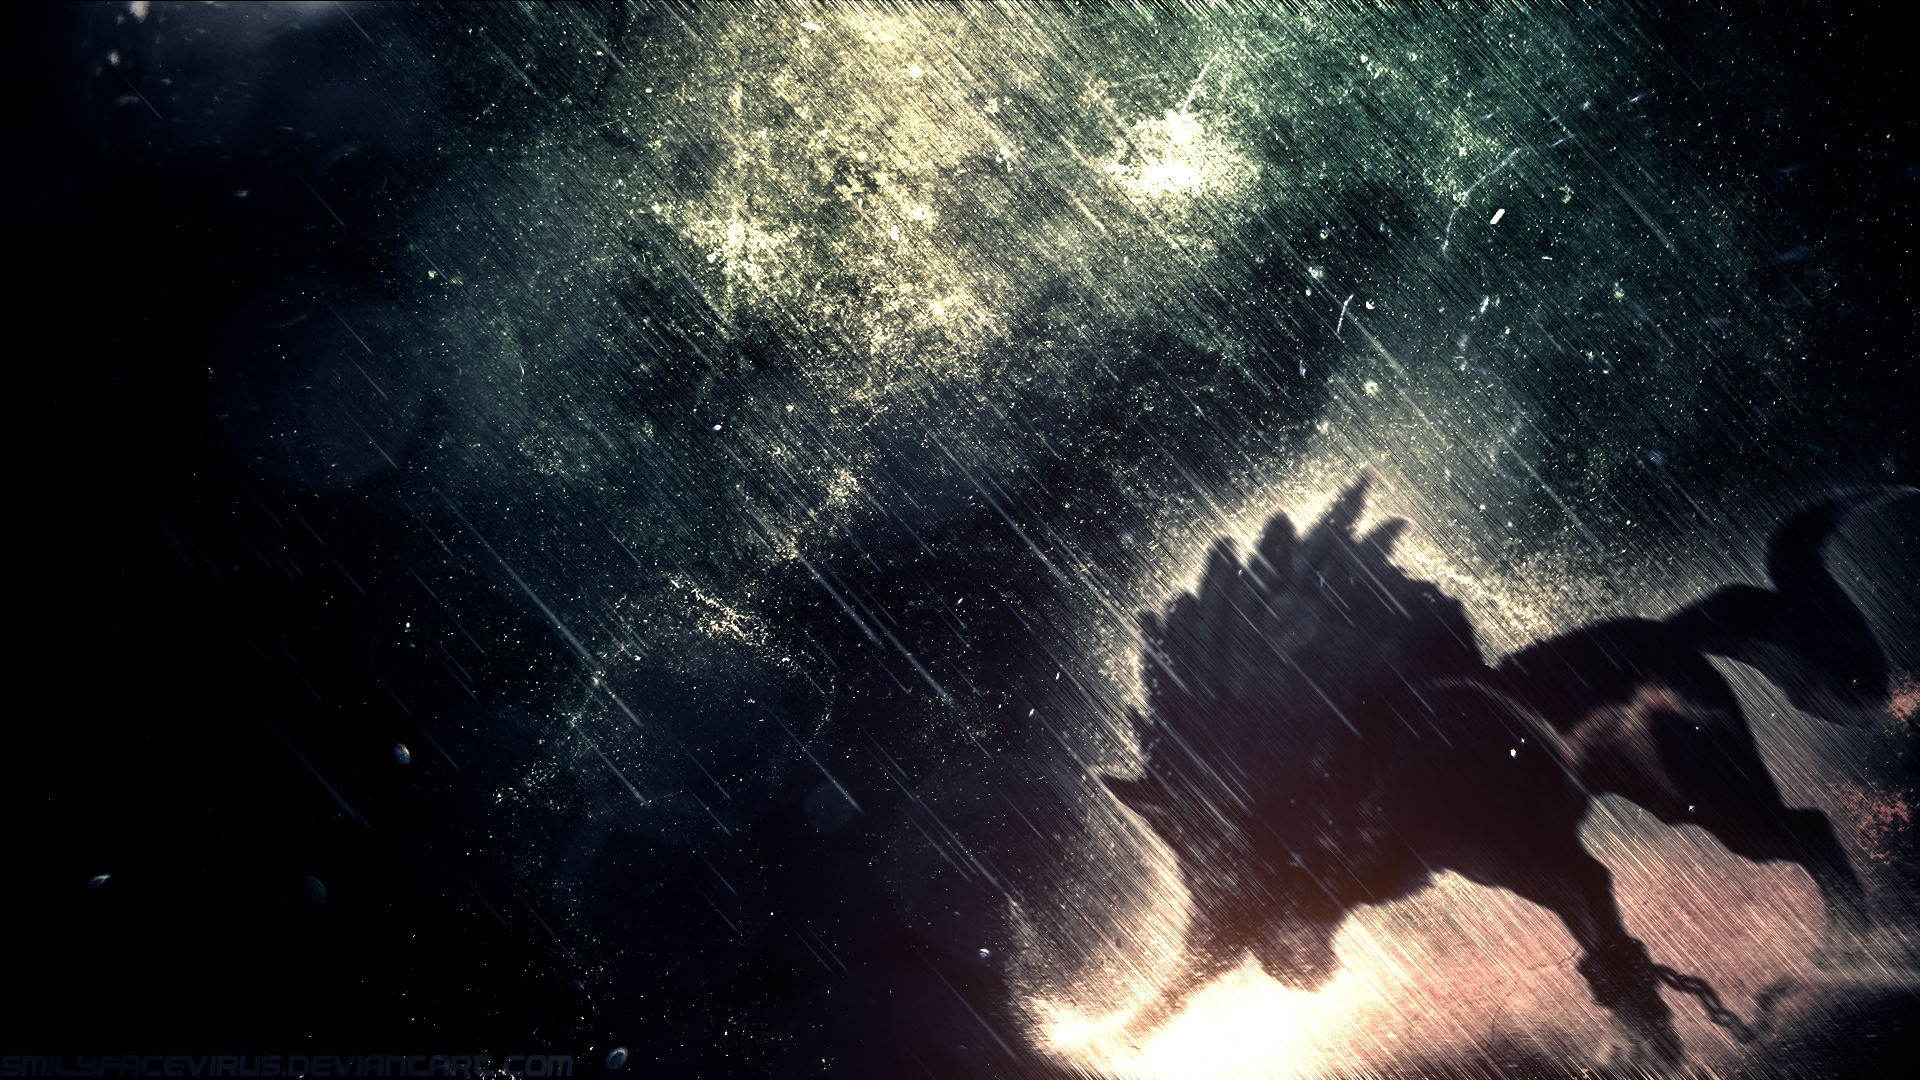 Wolf Wallpaper 2 By Smilyfacevirus On Deviantart